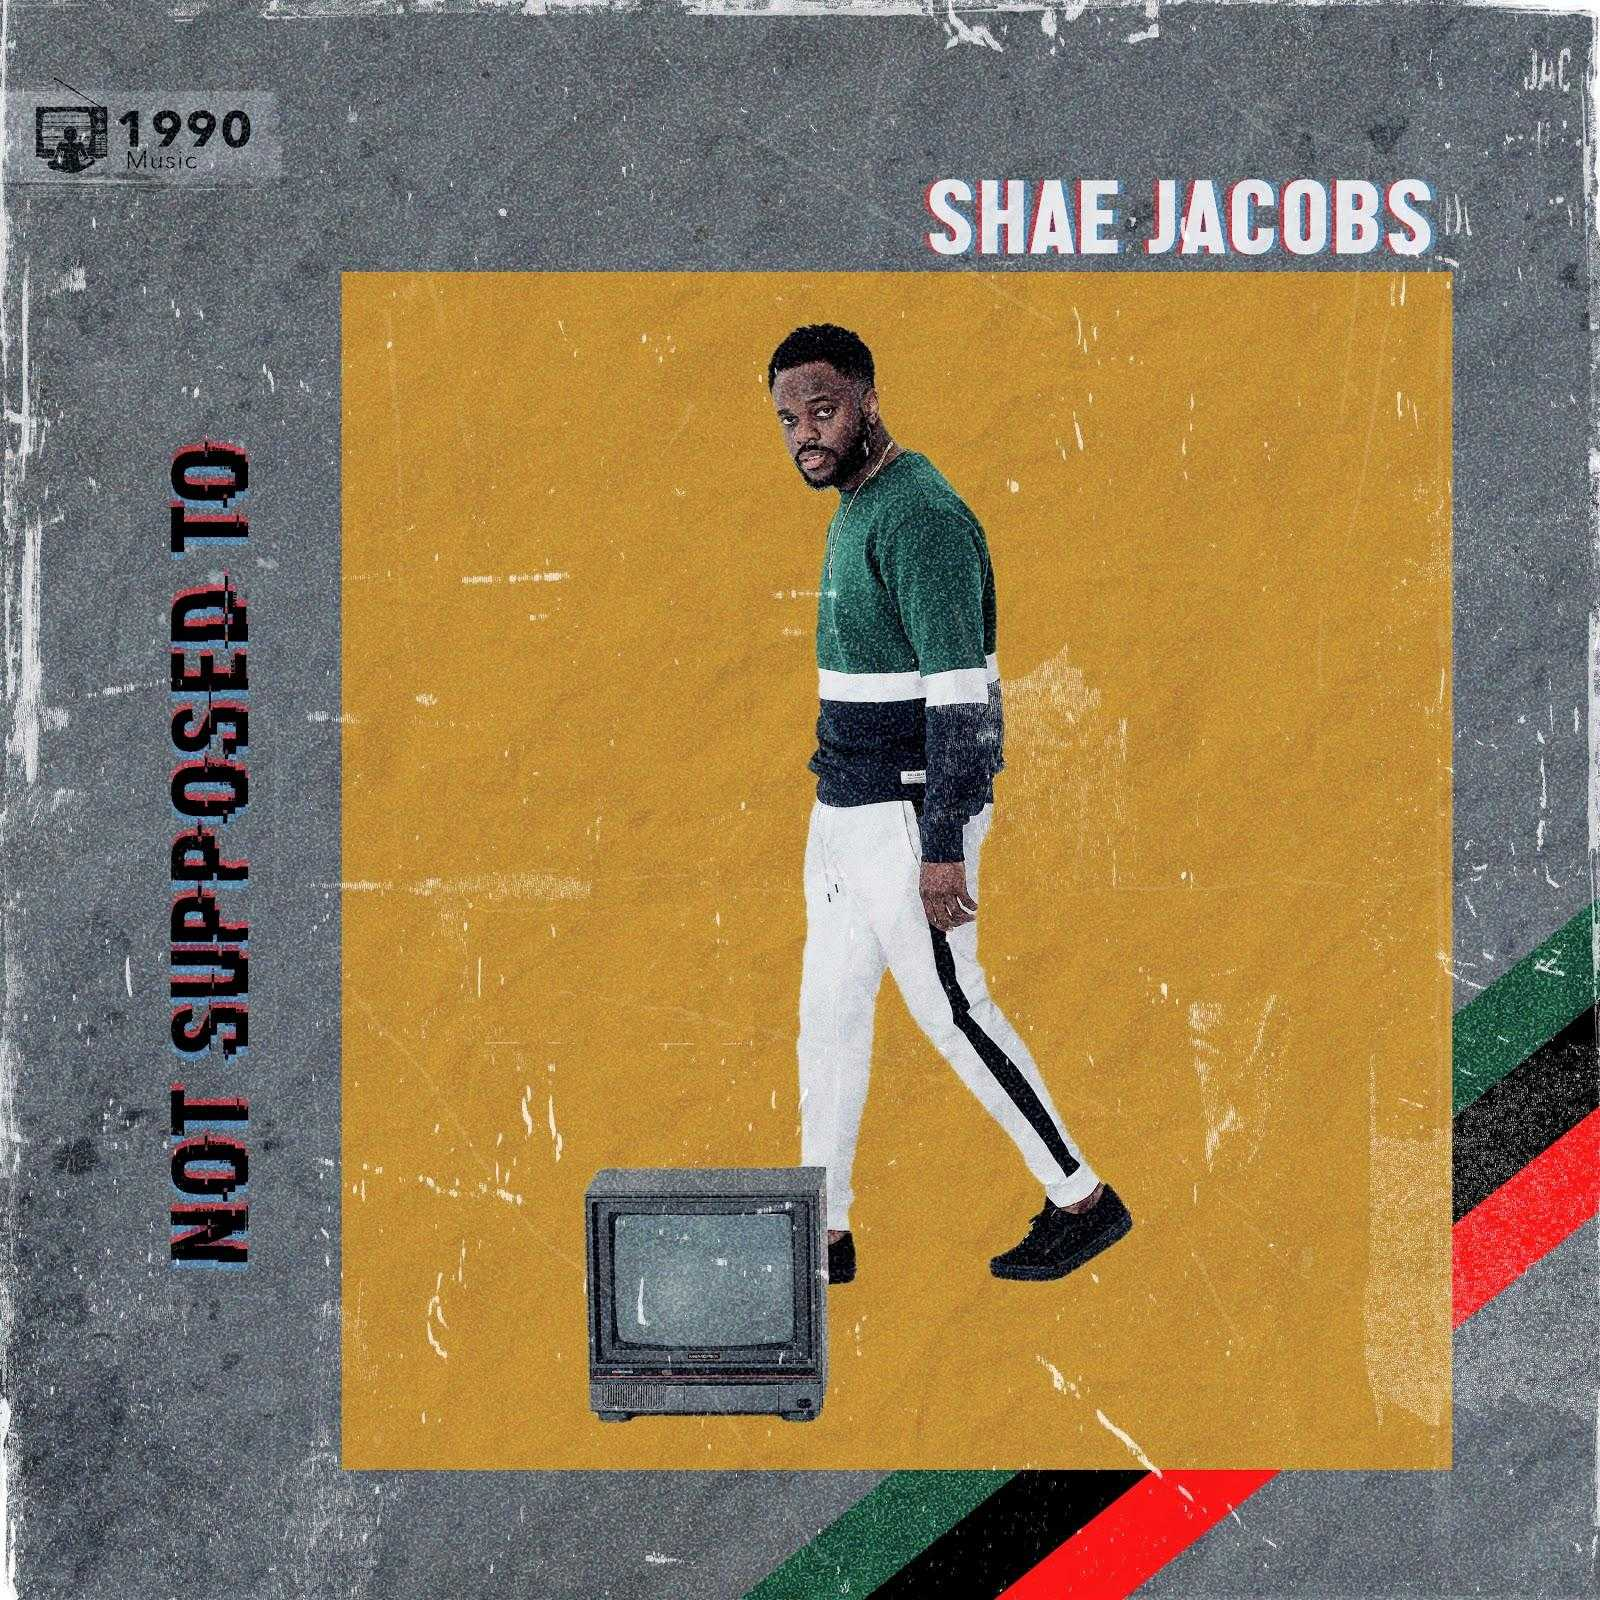 Shae Jacobs Drops New Single 'Not Supposed To' [Audio]